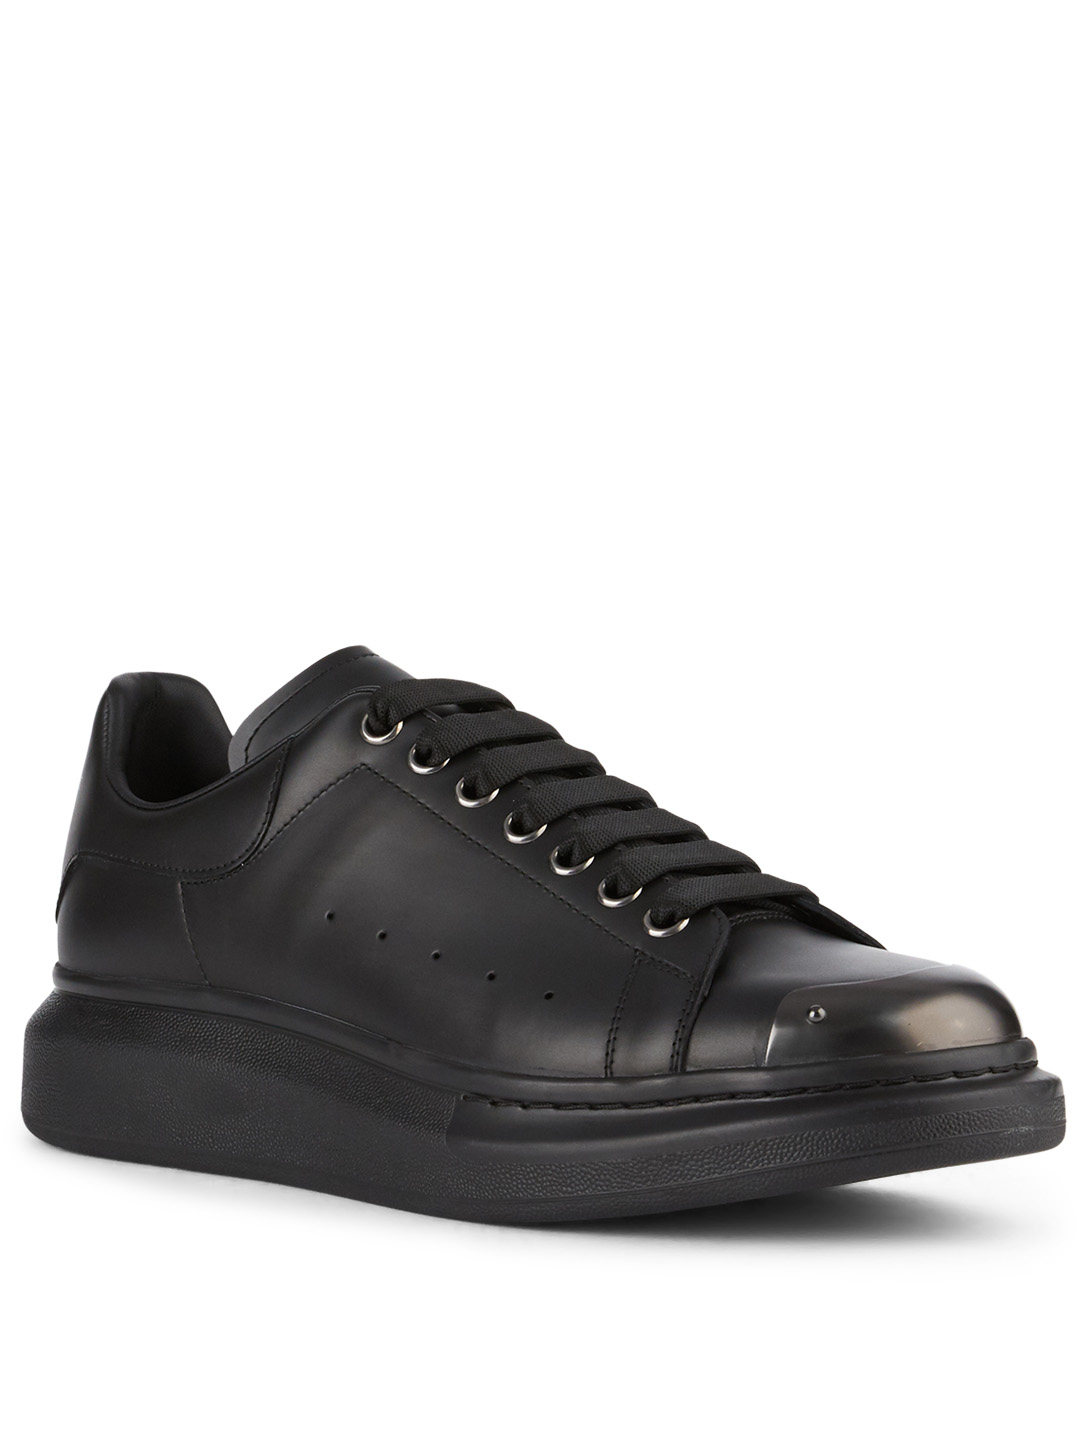 ALEXANDER MCQUEEN Oversized Leather Sneakers Men's Black